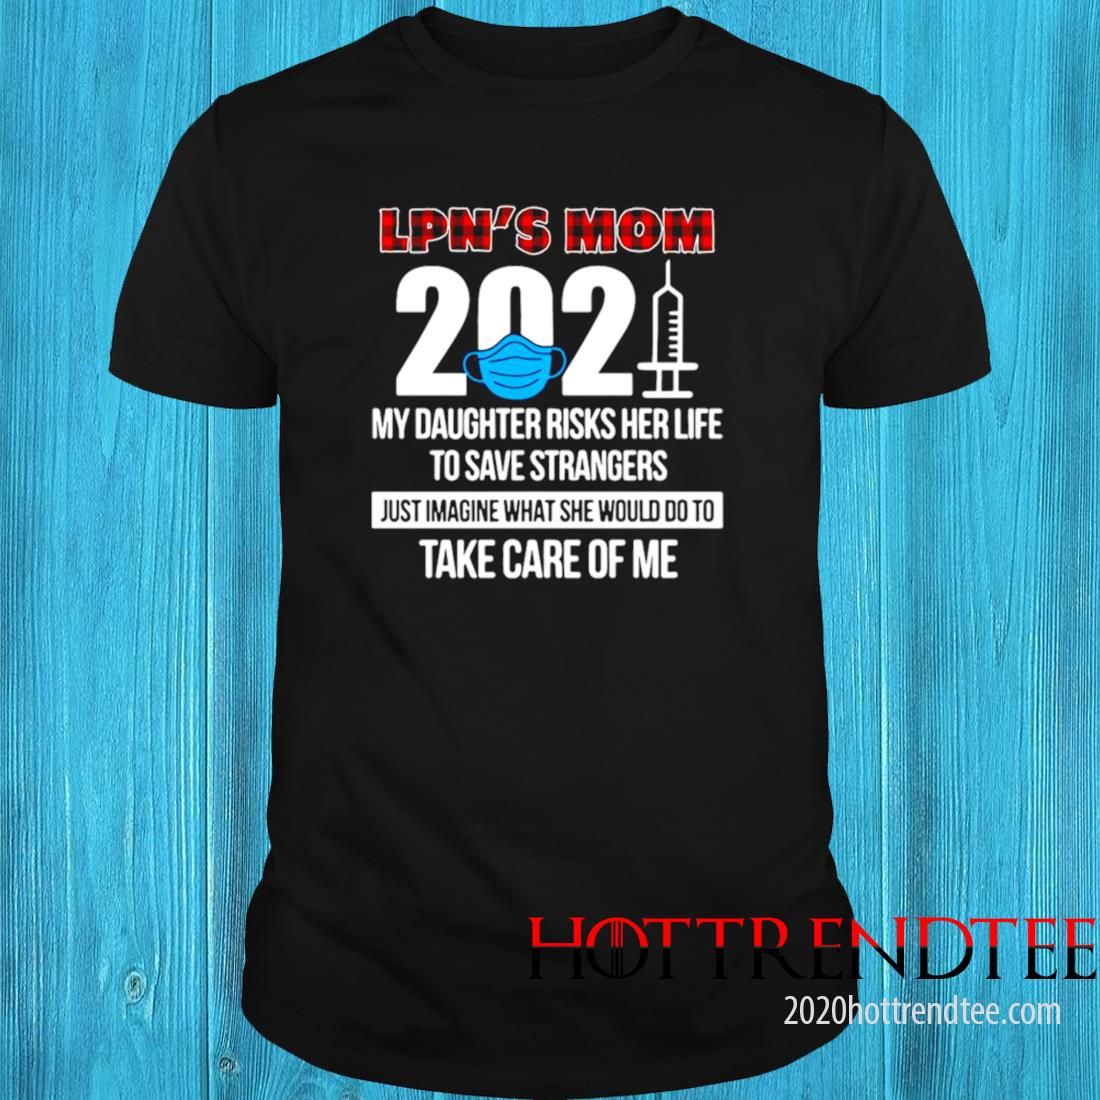 LPN's Mom 2021 My Daughter Risks Her Life To Save Strangers Just Imagine What She Would Do To Take Care Of Me Shirt